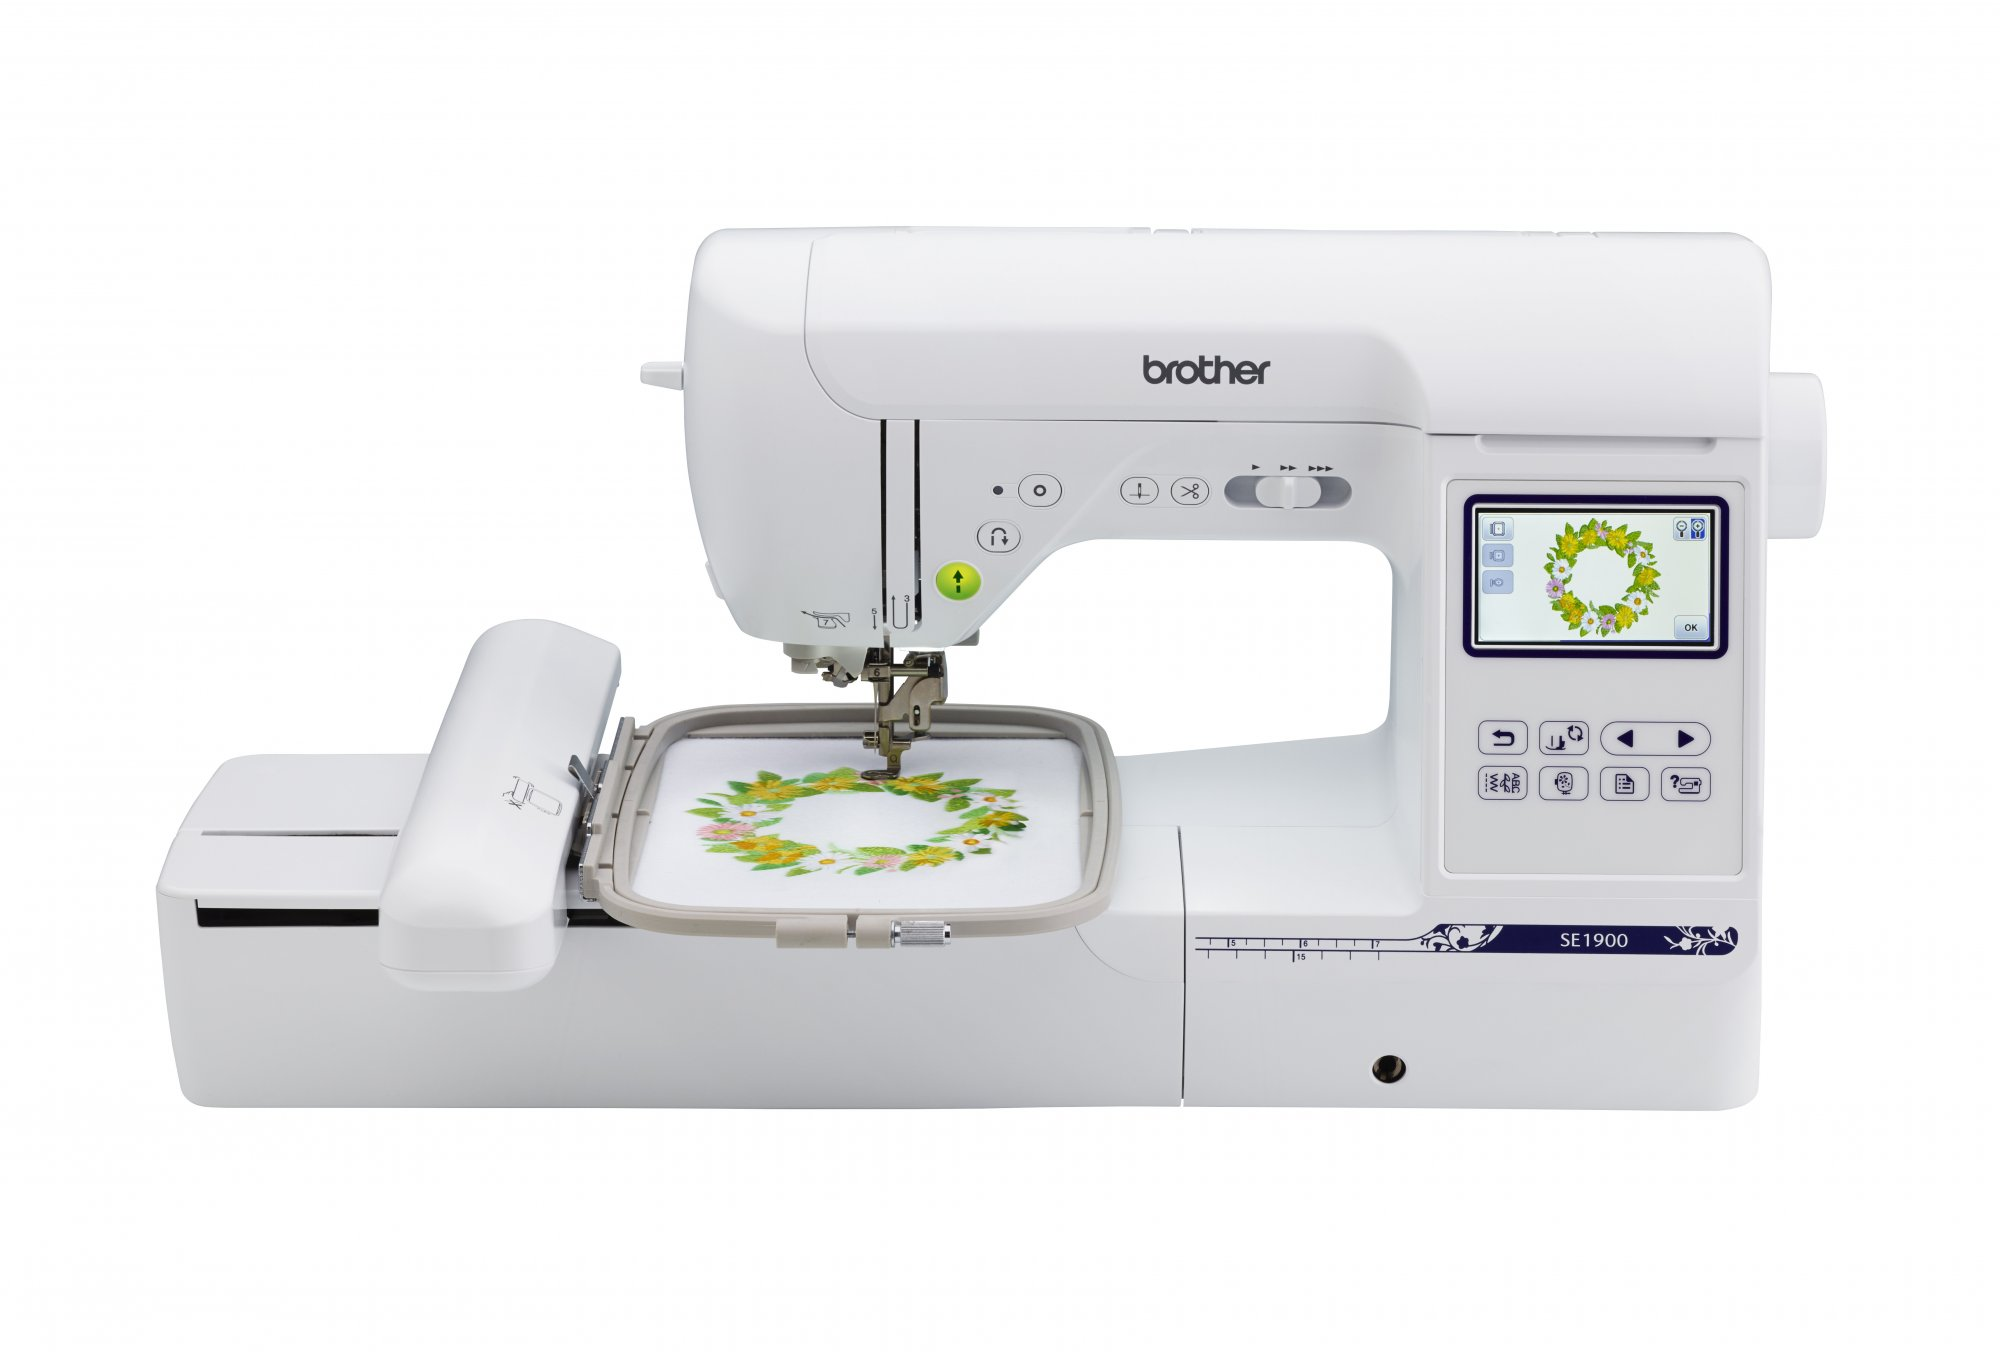 Embroidery Machine Rentals by the hour